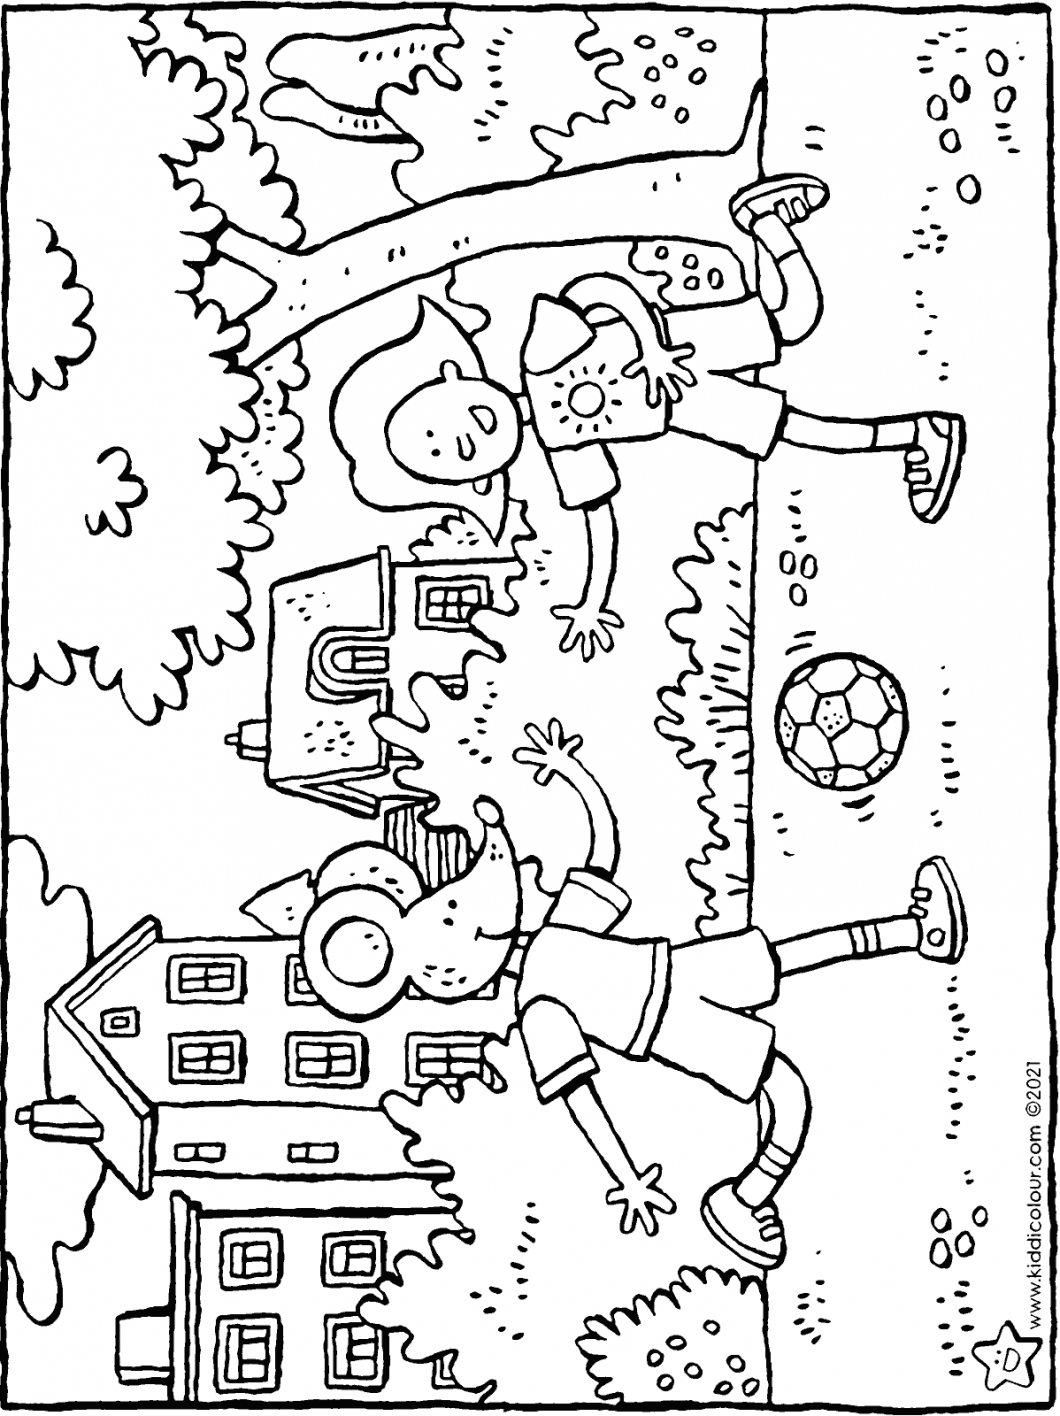 footballing with Emma and Thomas colouring page drawing picture 01H